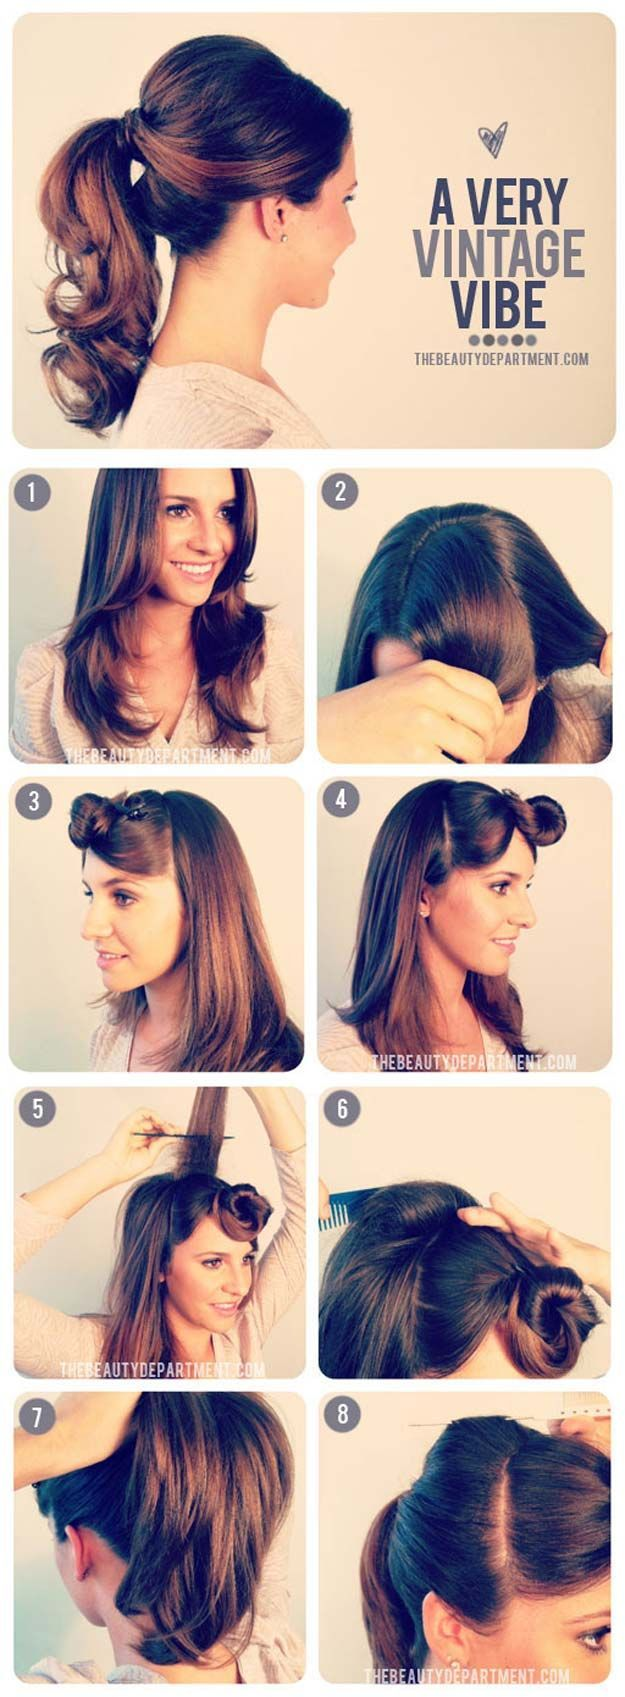 Easy Hairstyles For Work 1950 S Inspired Ponytail Quick And Easy Hairstyles For The Lazy Gir Easy Hairstyles Easy Work Hairstyles Medium Length Hair Styles